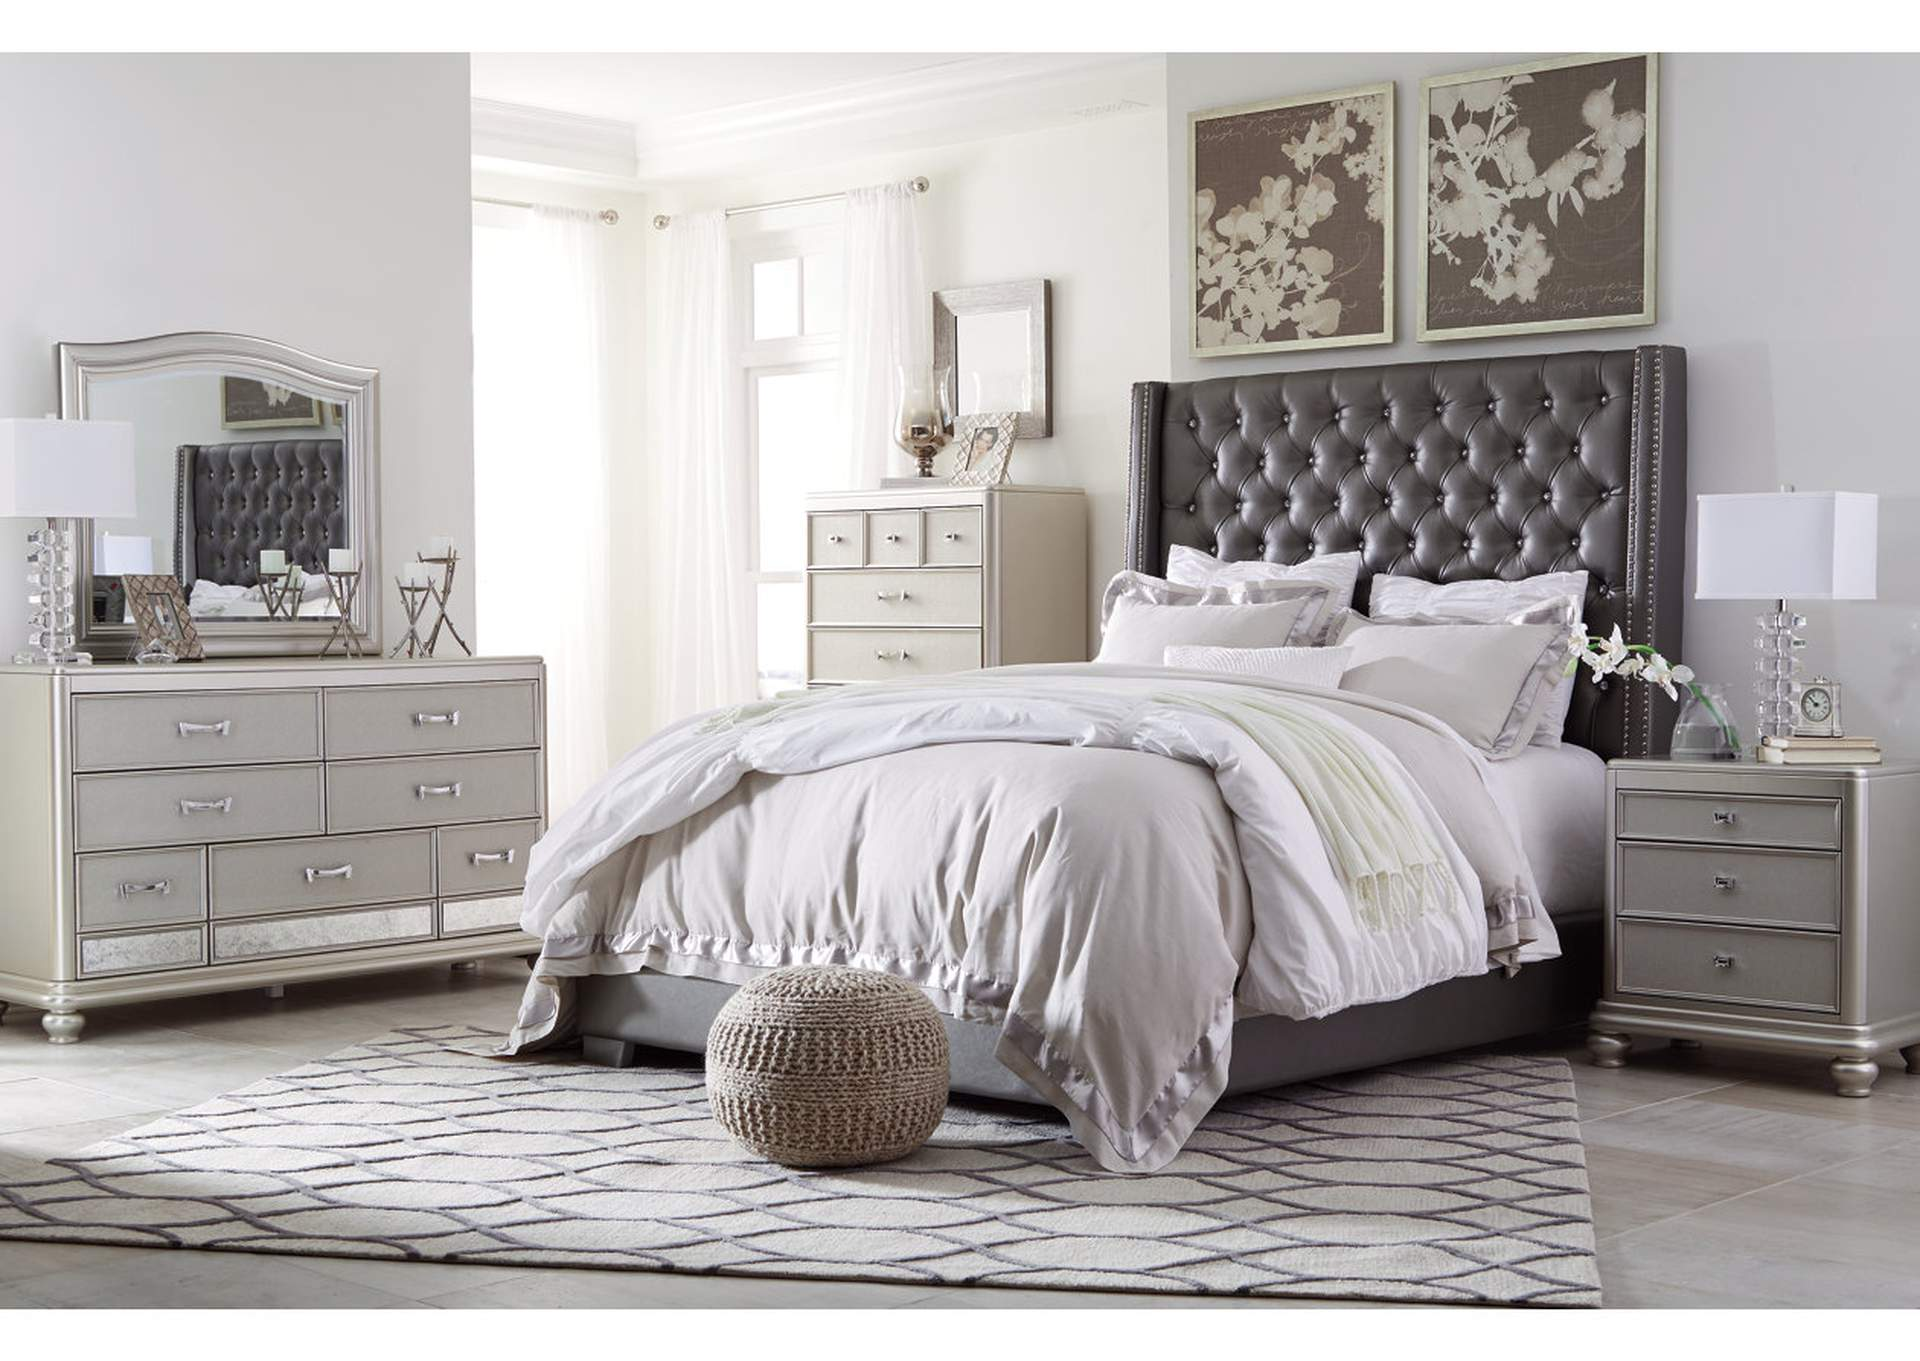 Coralayne Gray King Upholstered Bed w/Dresser, Mirror & Drawer Chest,Signature Design By Ashley